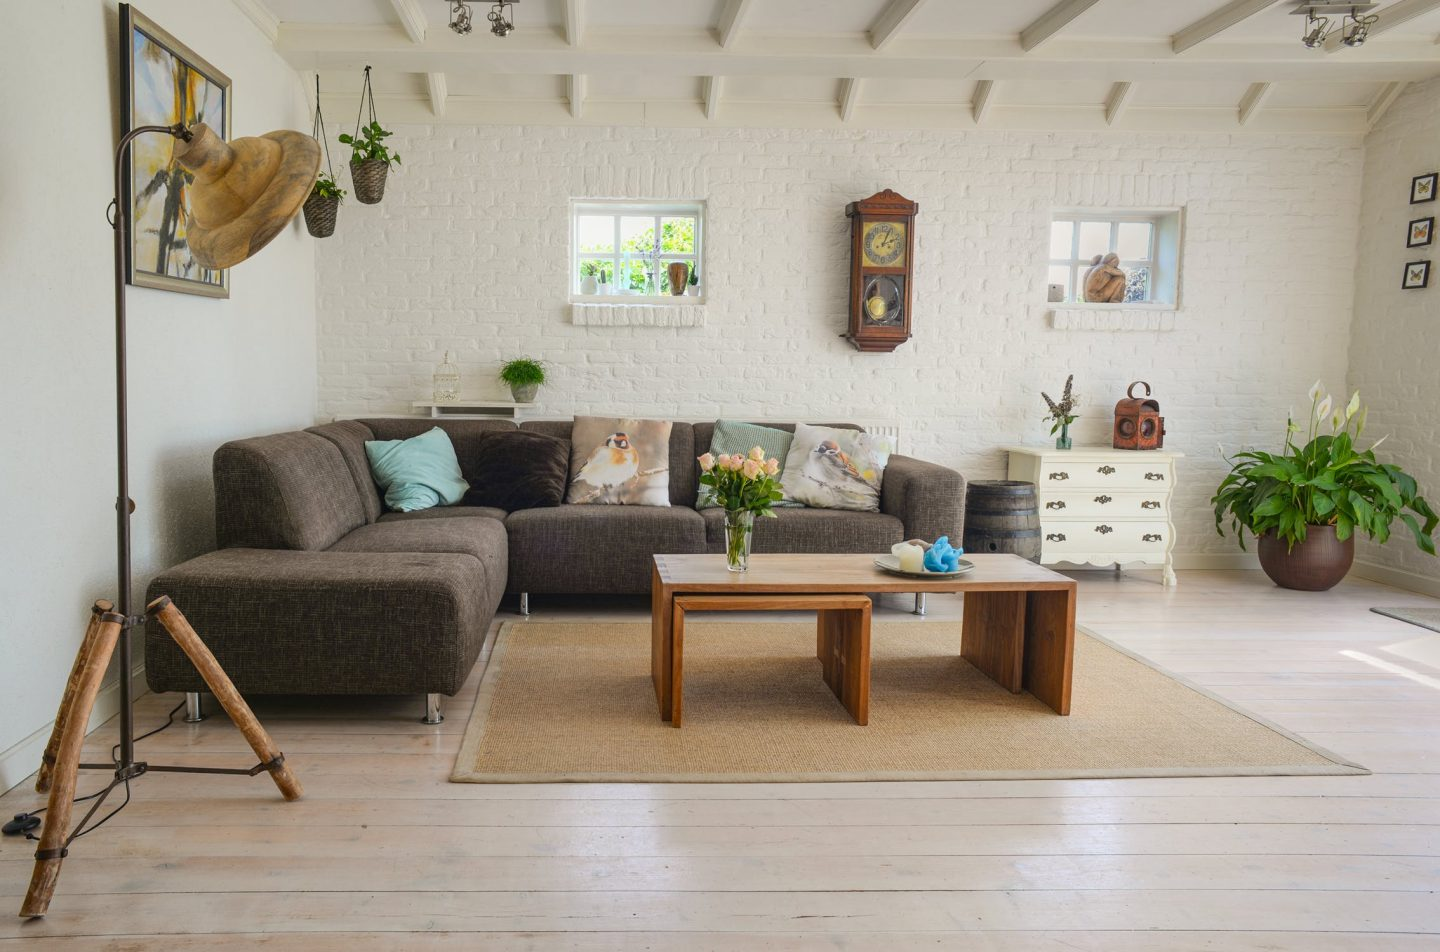 HOW TO MAKE YOUR HOME IDEAL FOR FAMILY LIVING ON A BUDGET